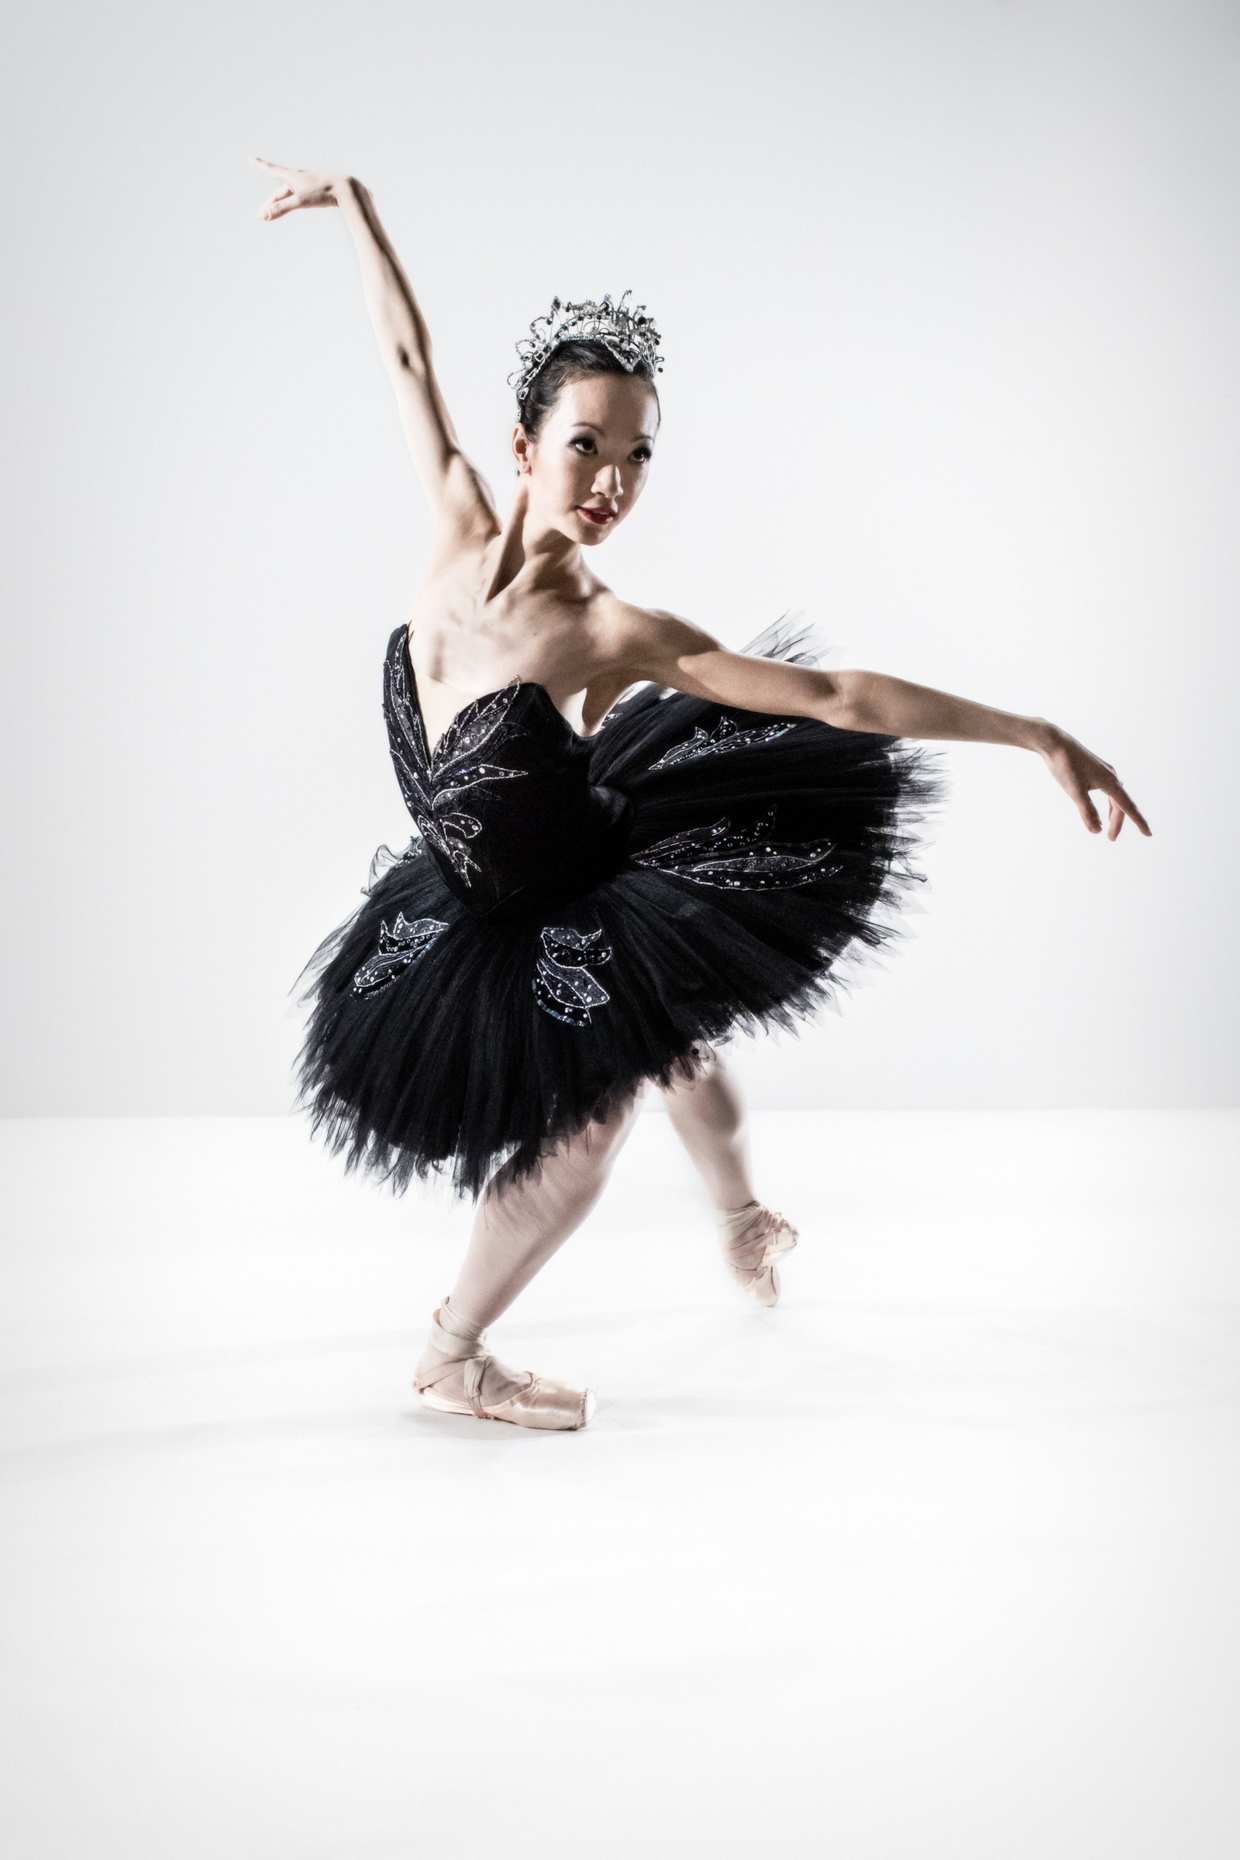 Xuan Cheng in Swan Lake